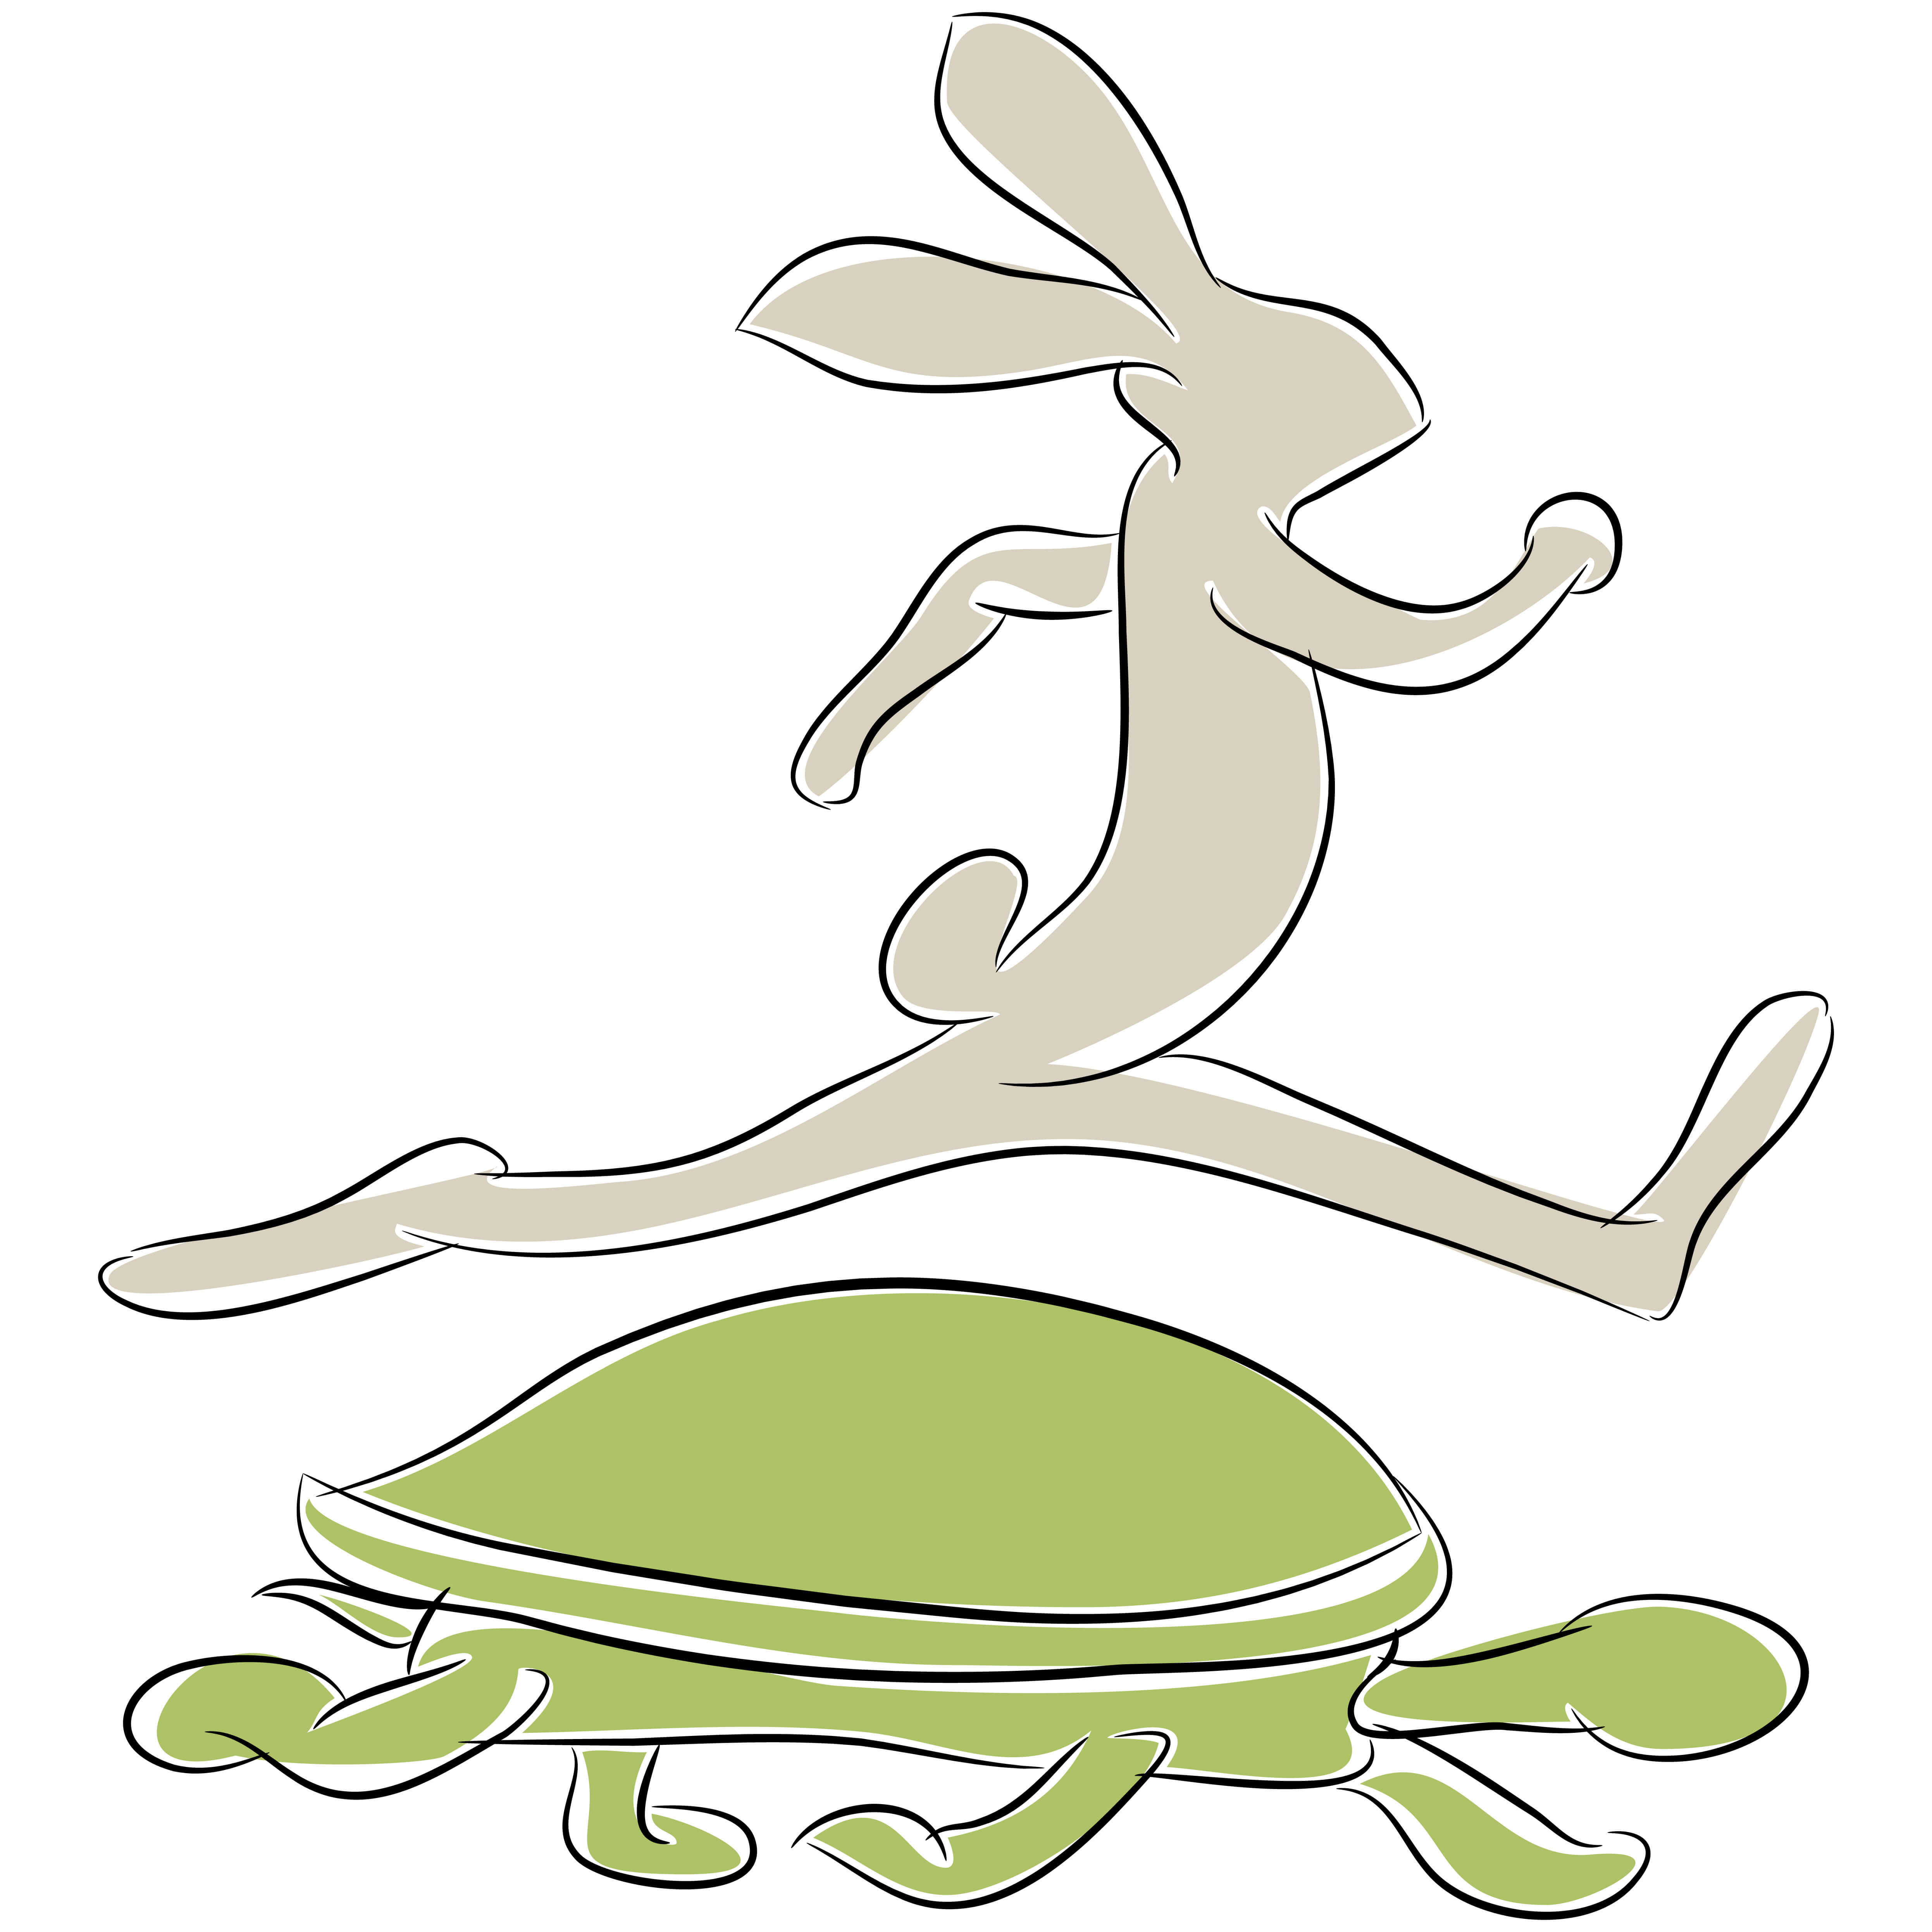 cartoon of the tortoise and the hare